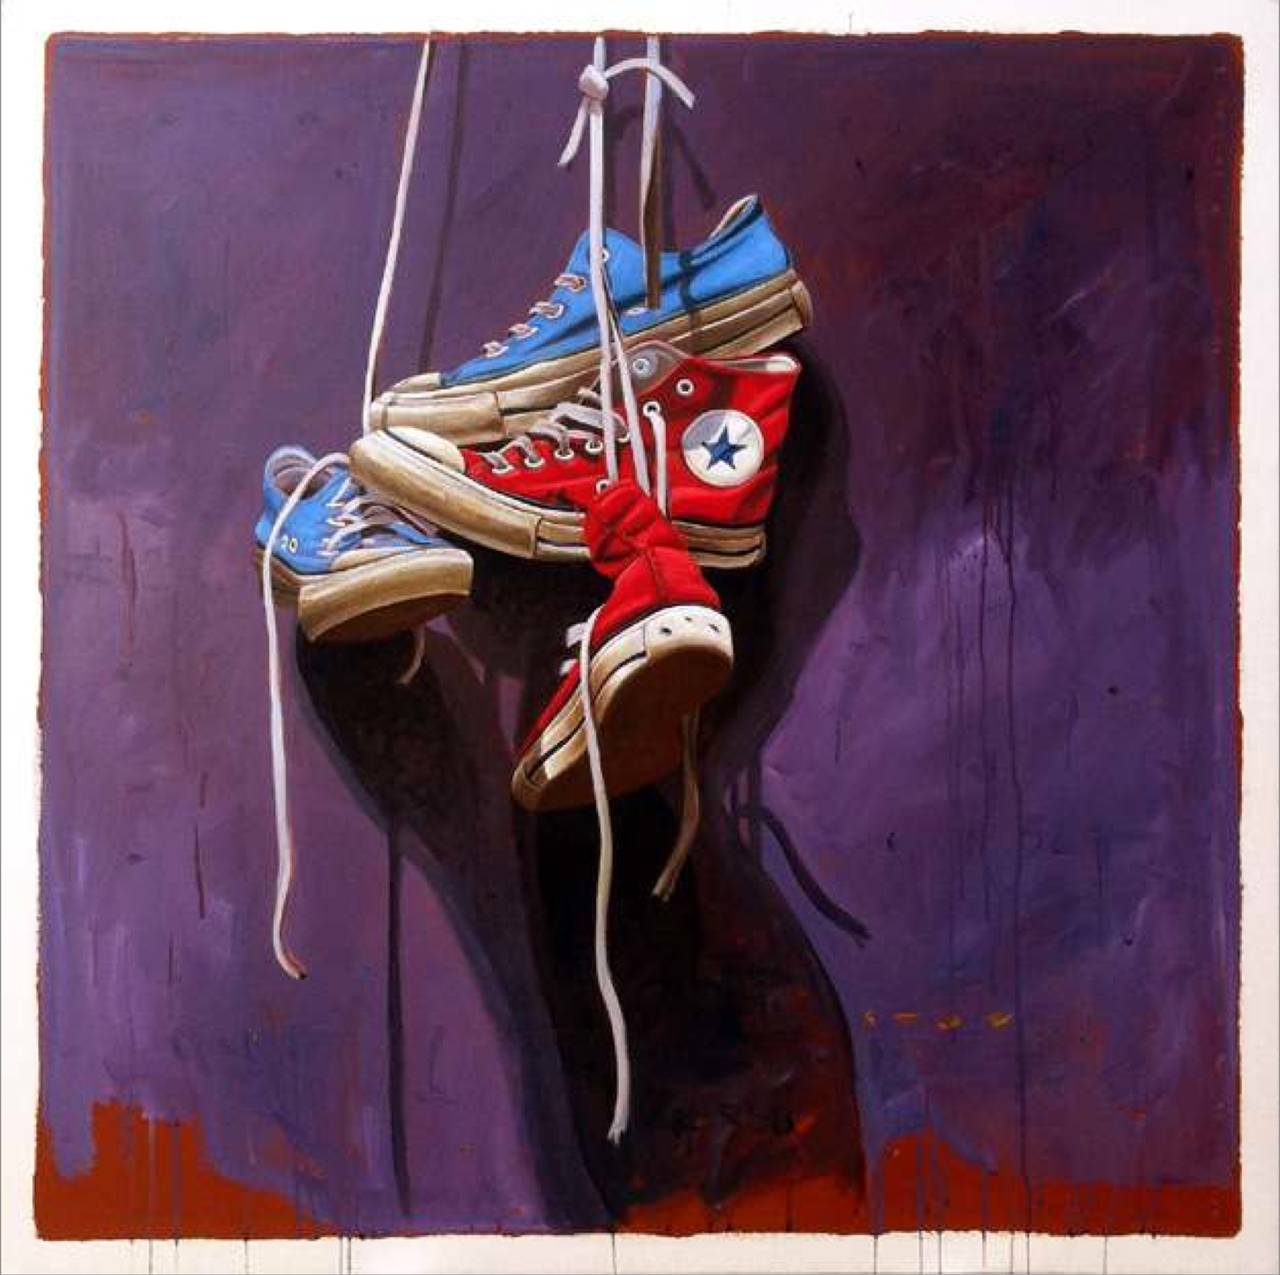 """#558"" Old Red and Blue Chuck Taylor Sneakers on Laces Dark Purple Background"